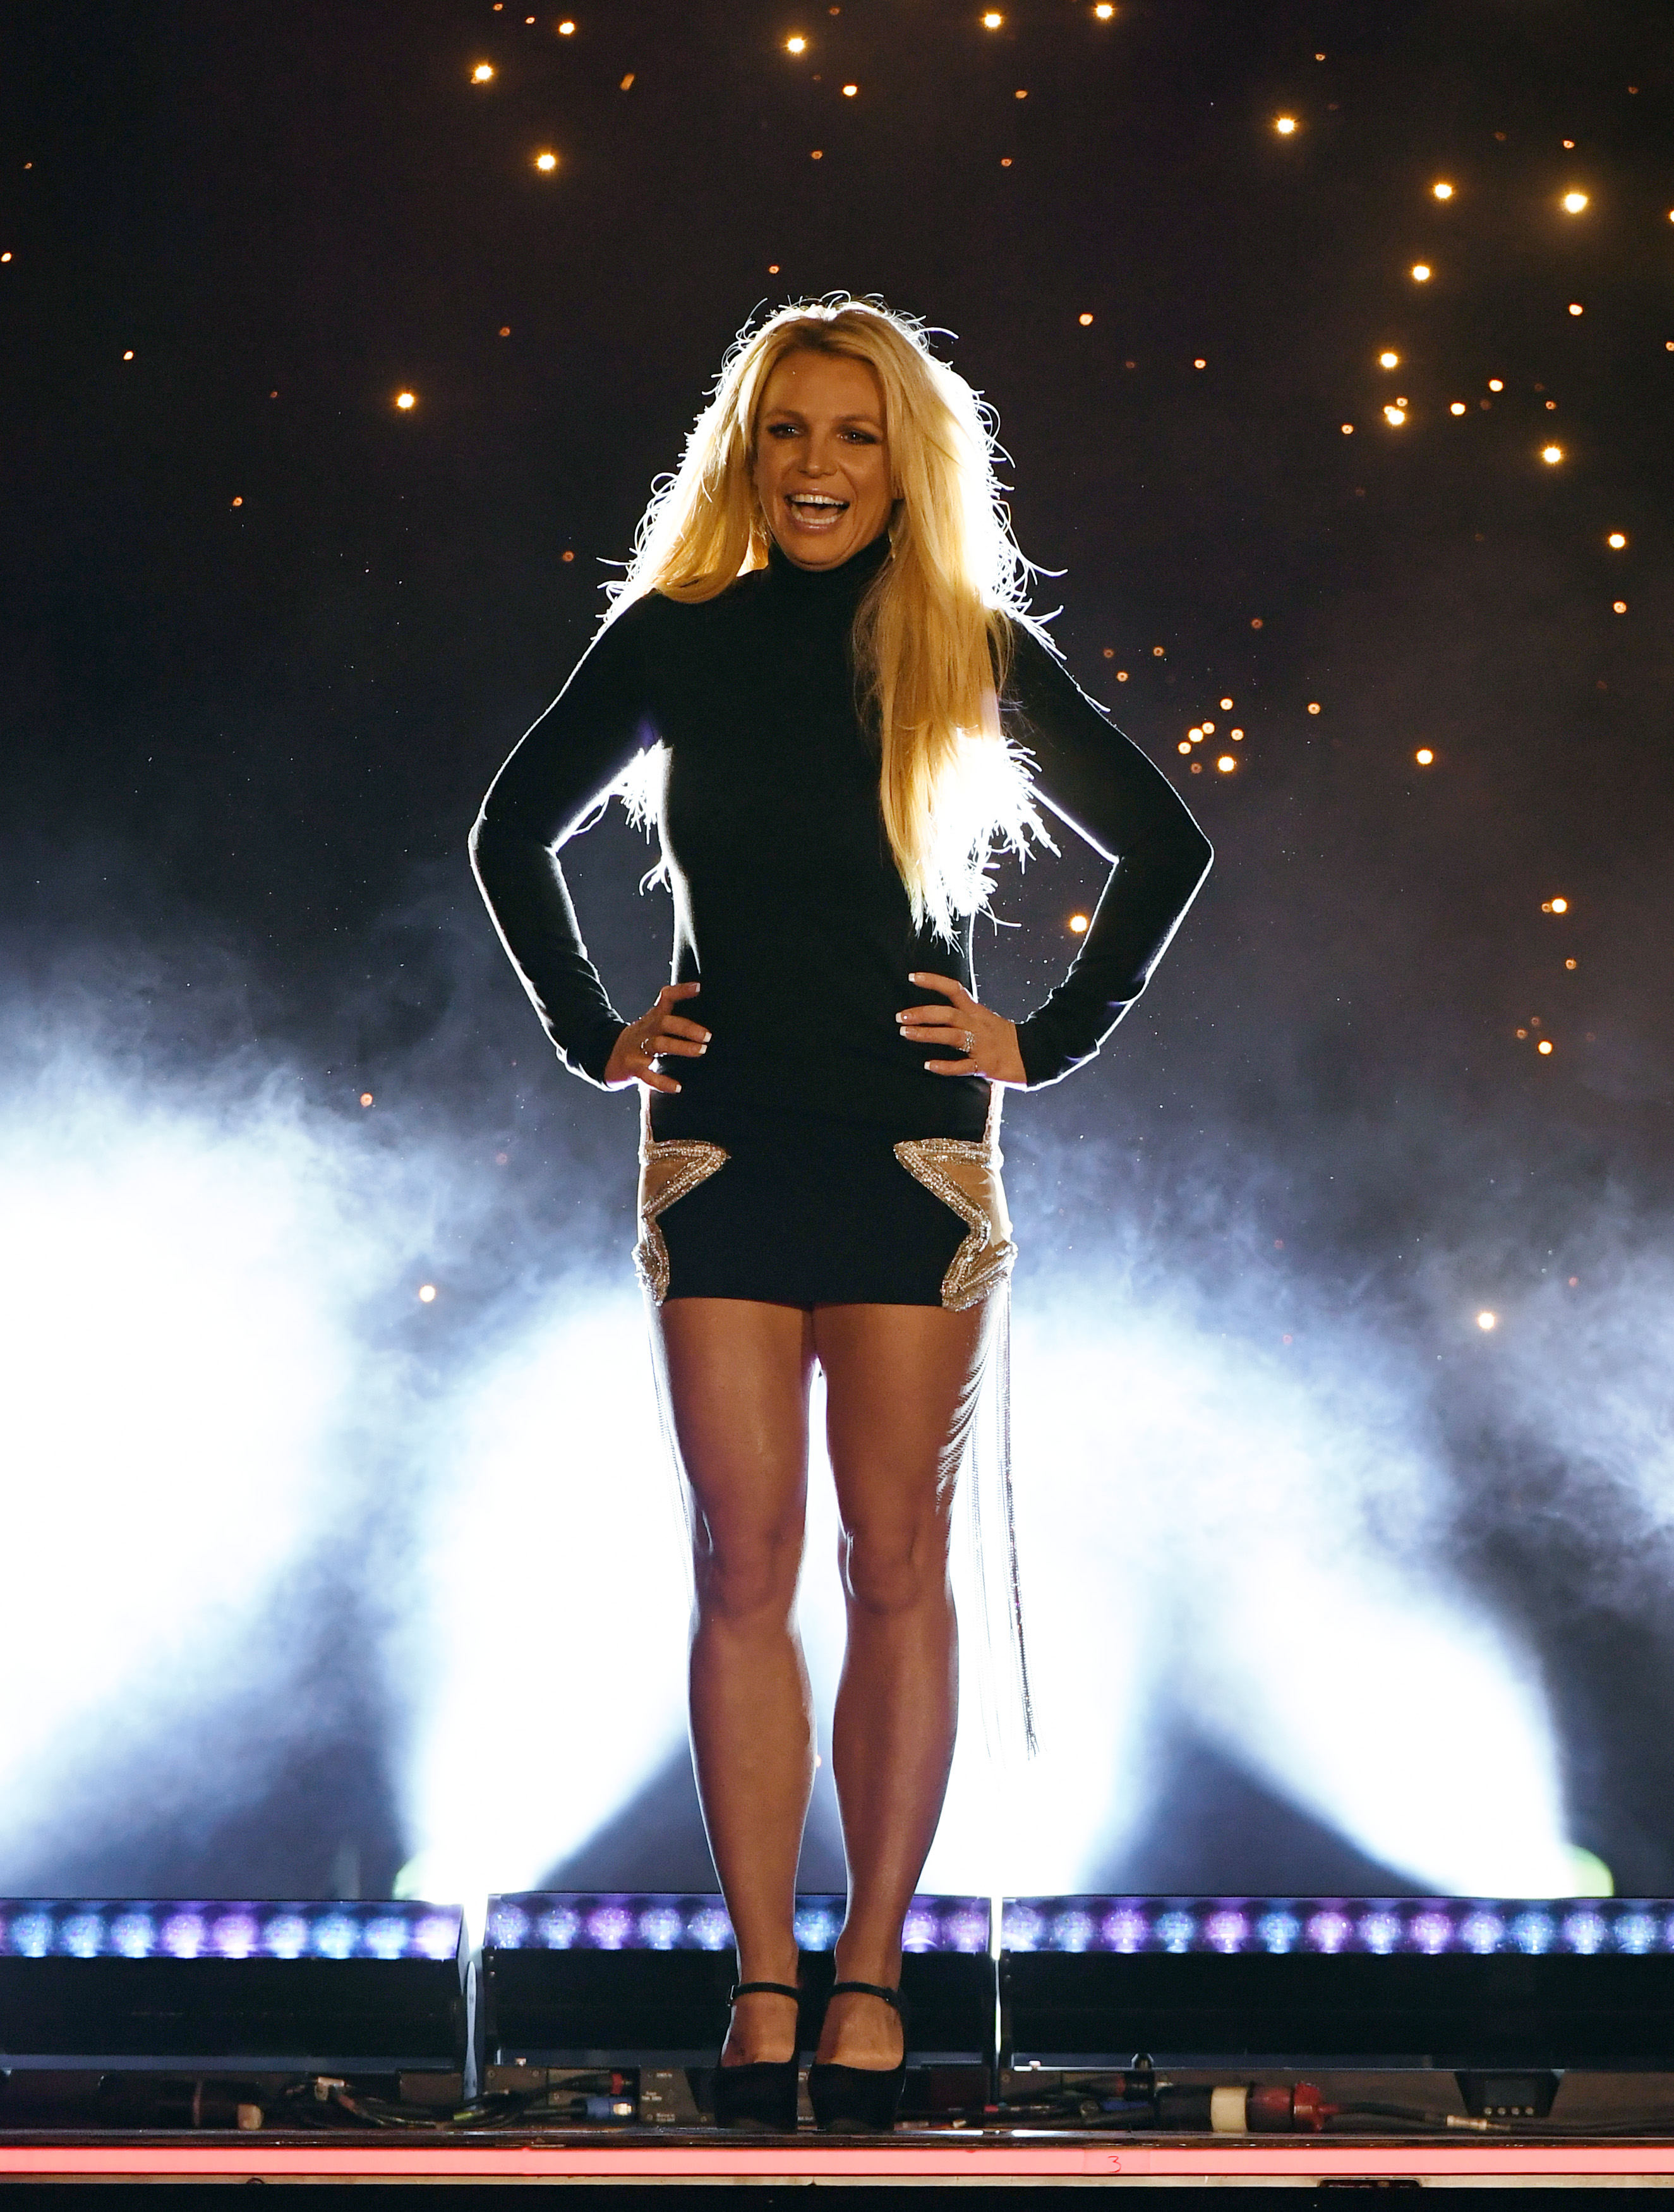 Singer Britney Spears attends the announcement of her new residency, 'Britney: Domination' at Park MGM on October 18, 2018 in Las Vegas, Nevada. Spears will perform 32 shows at Park Theater at Park MGM starting in February 2019.